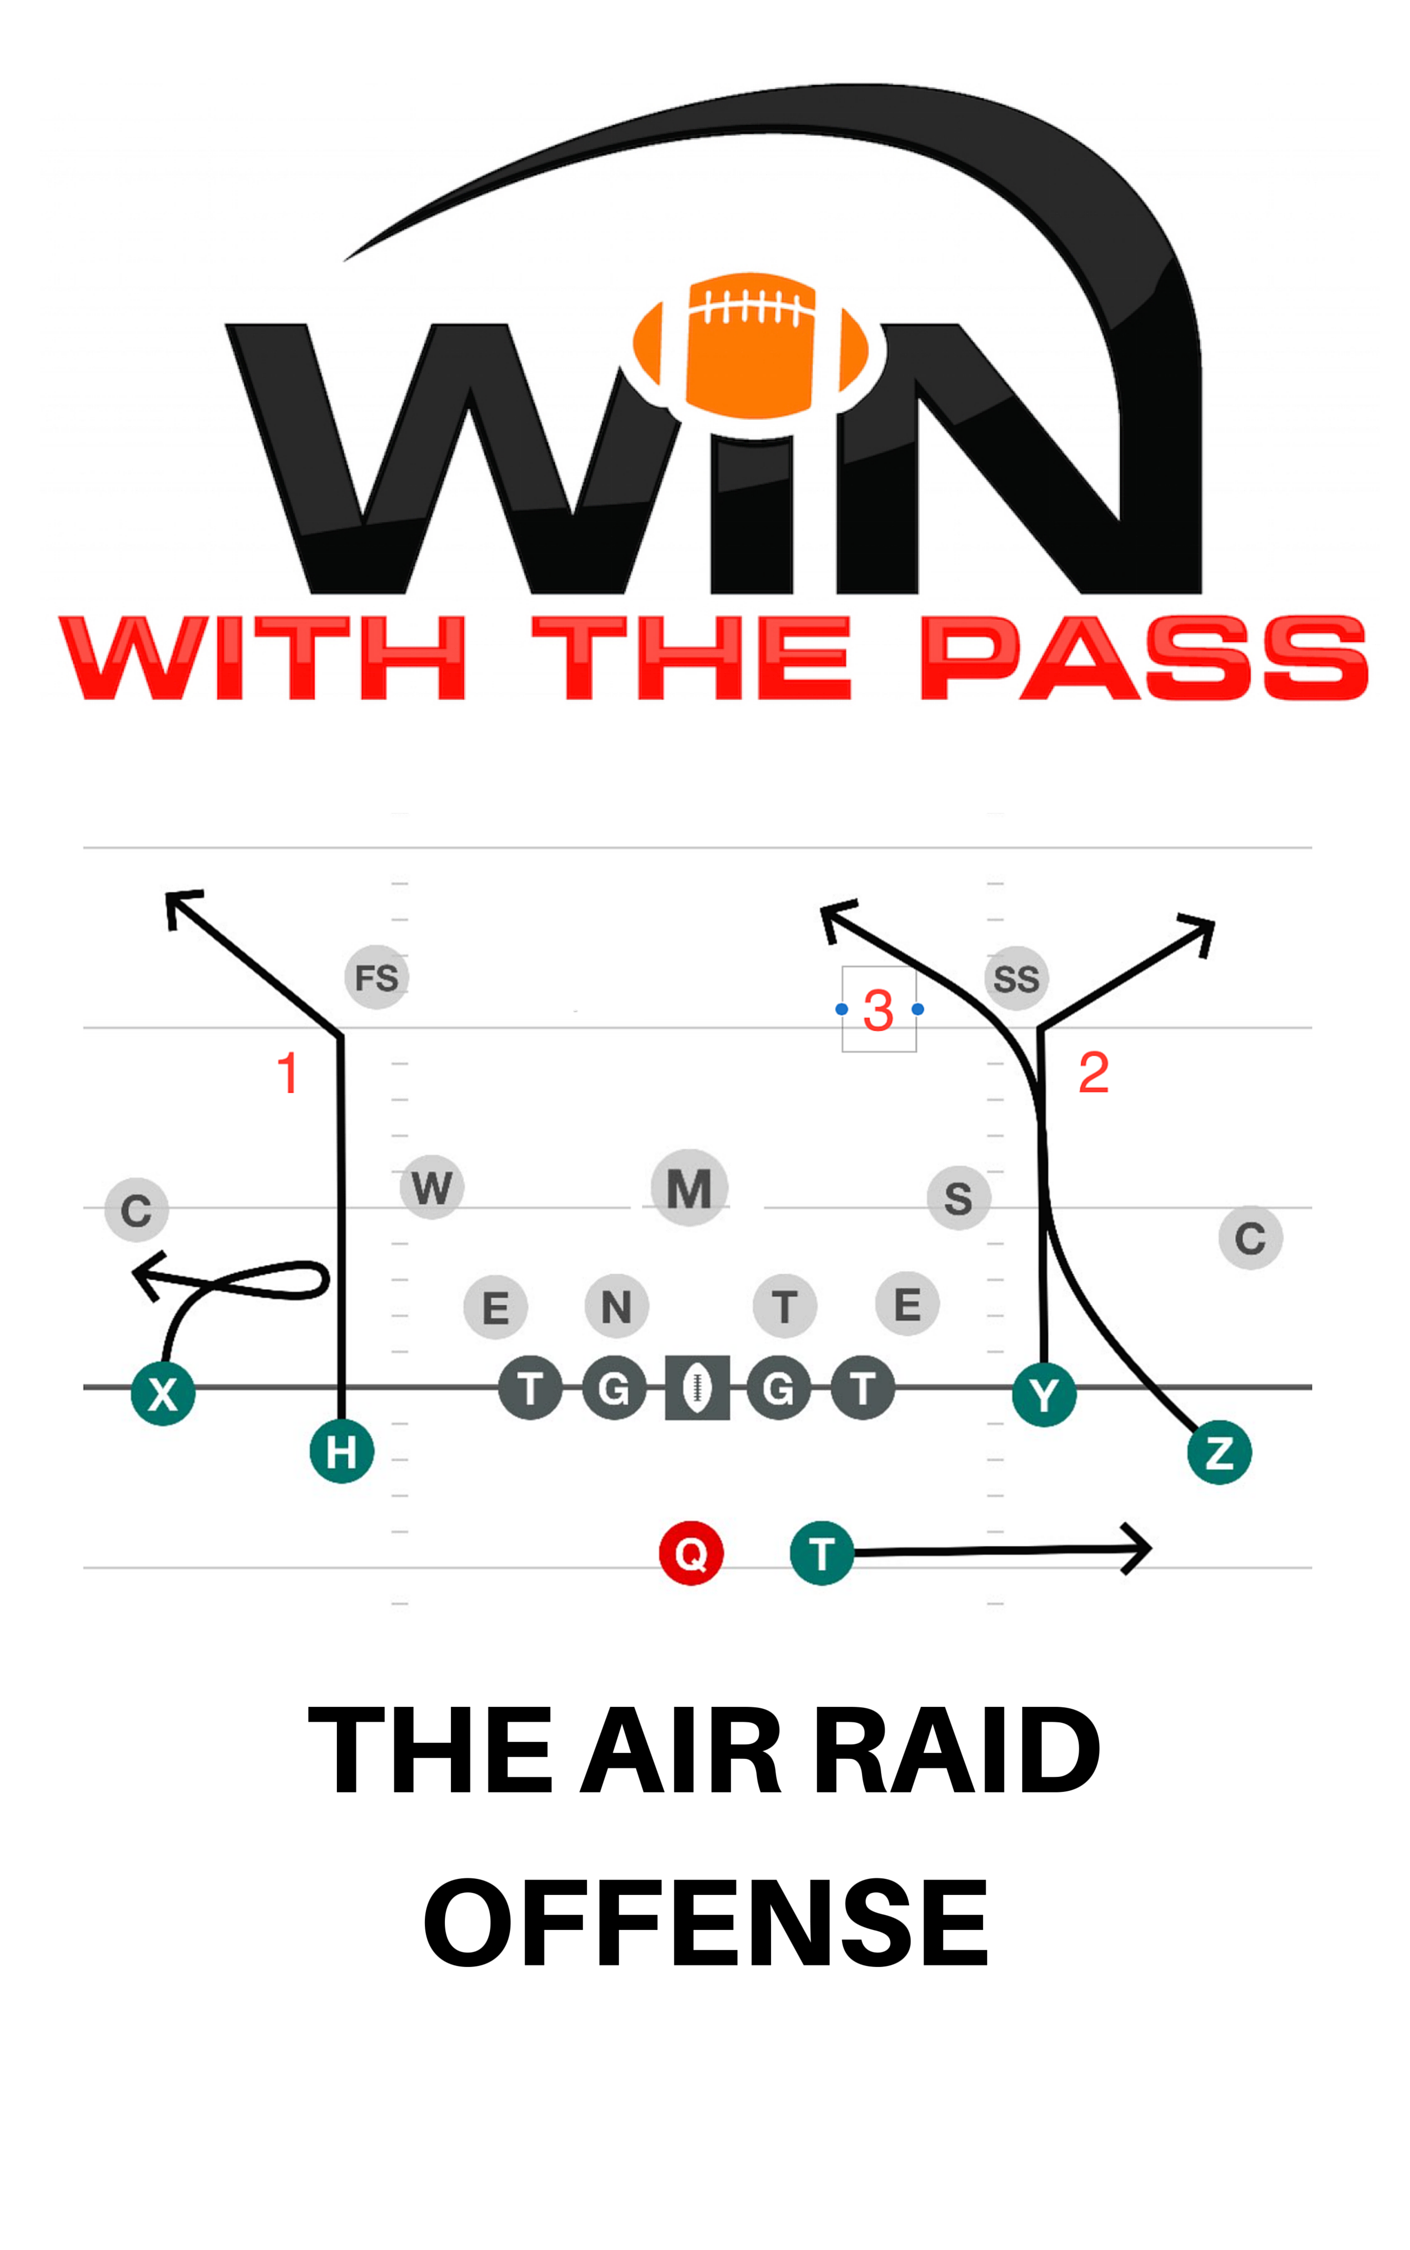 The Air Raid playbook